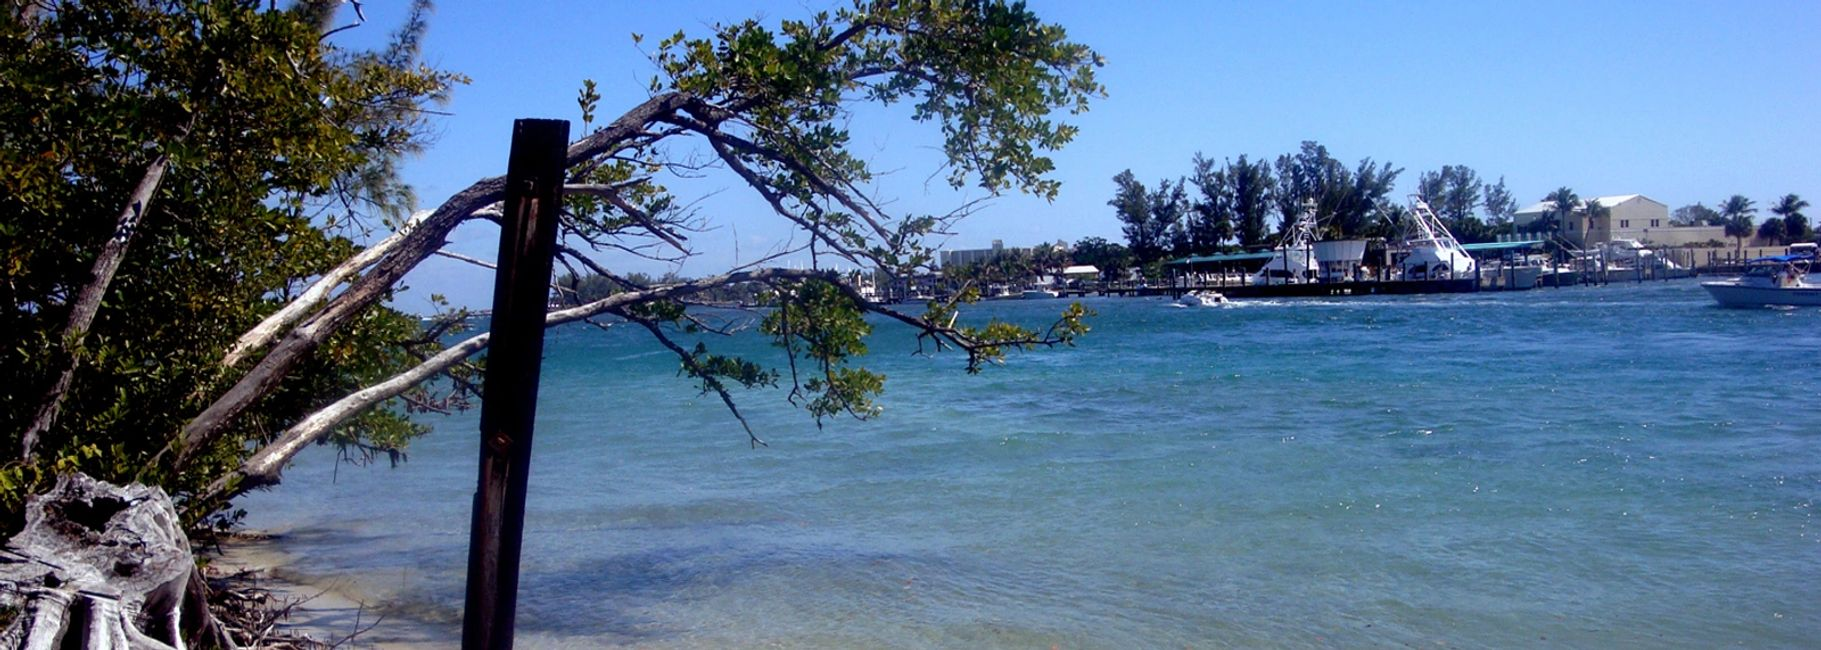 Jupiter Florida Inlet Intercoastal Palm Beach Florida Intracoastal Beach Dubois Park Waterway Abacoa